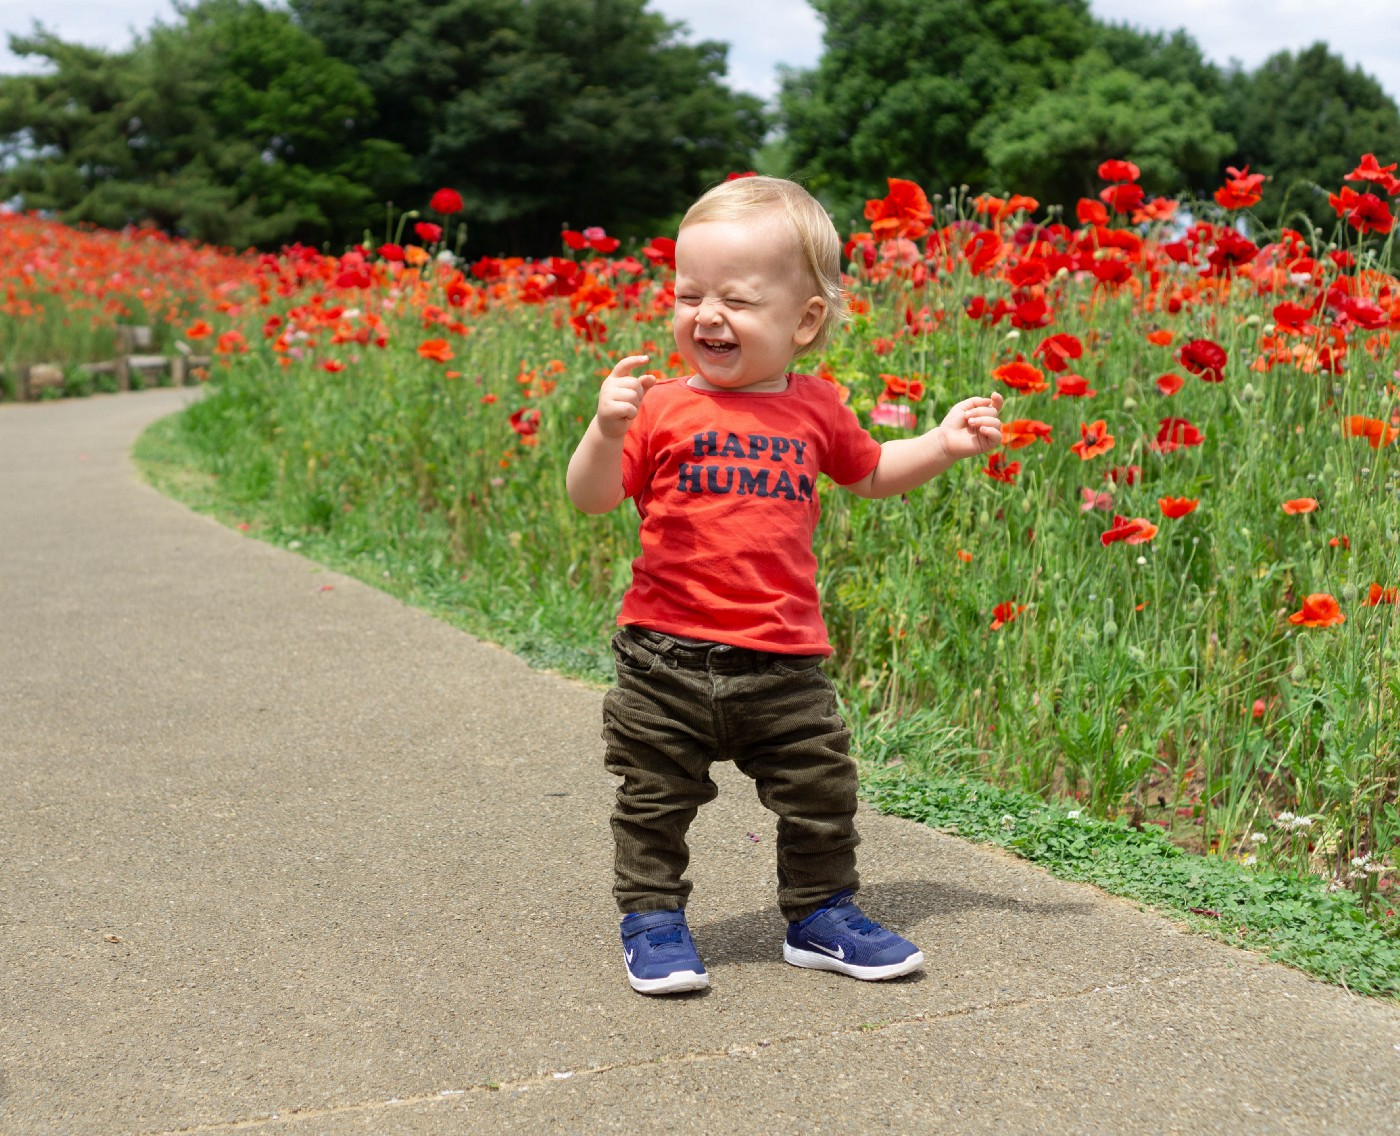 """young toddler with red tee shirt that says """"happy human"""" walking down path between fields of red poppies"""